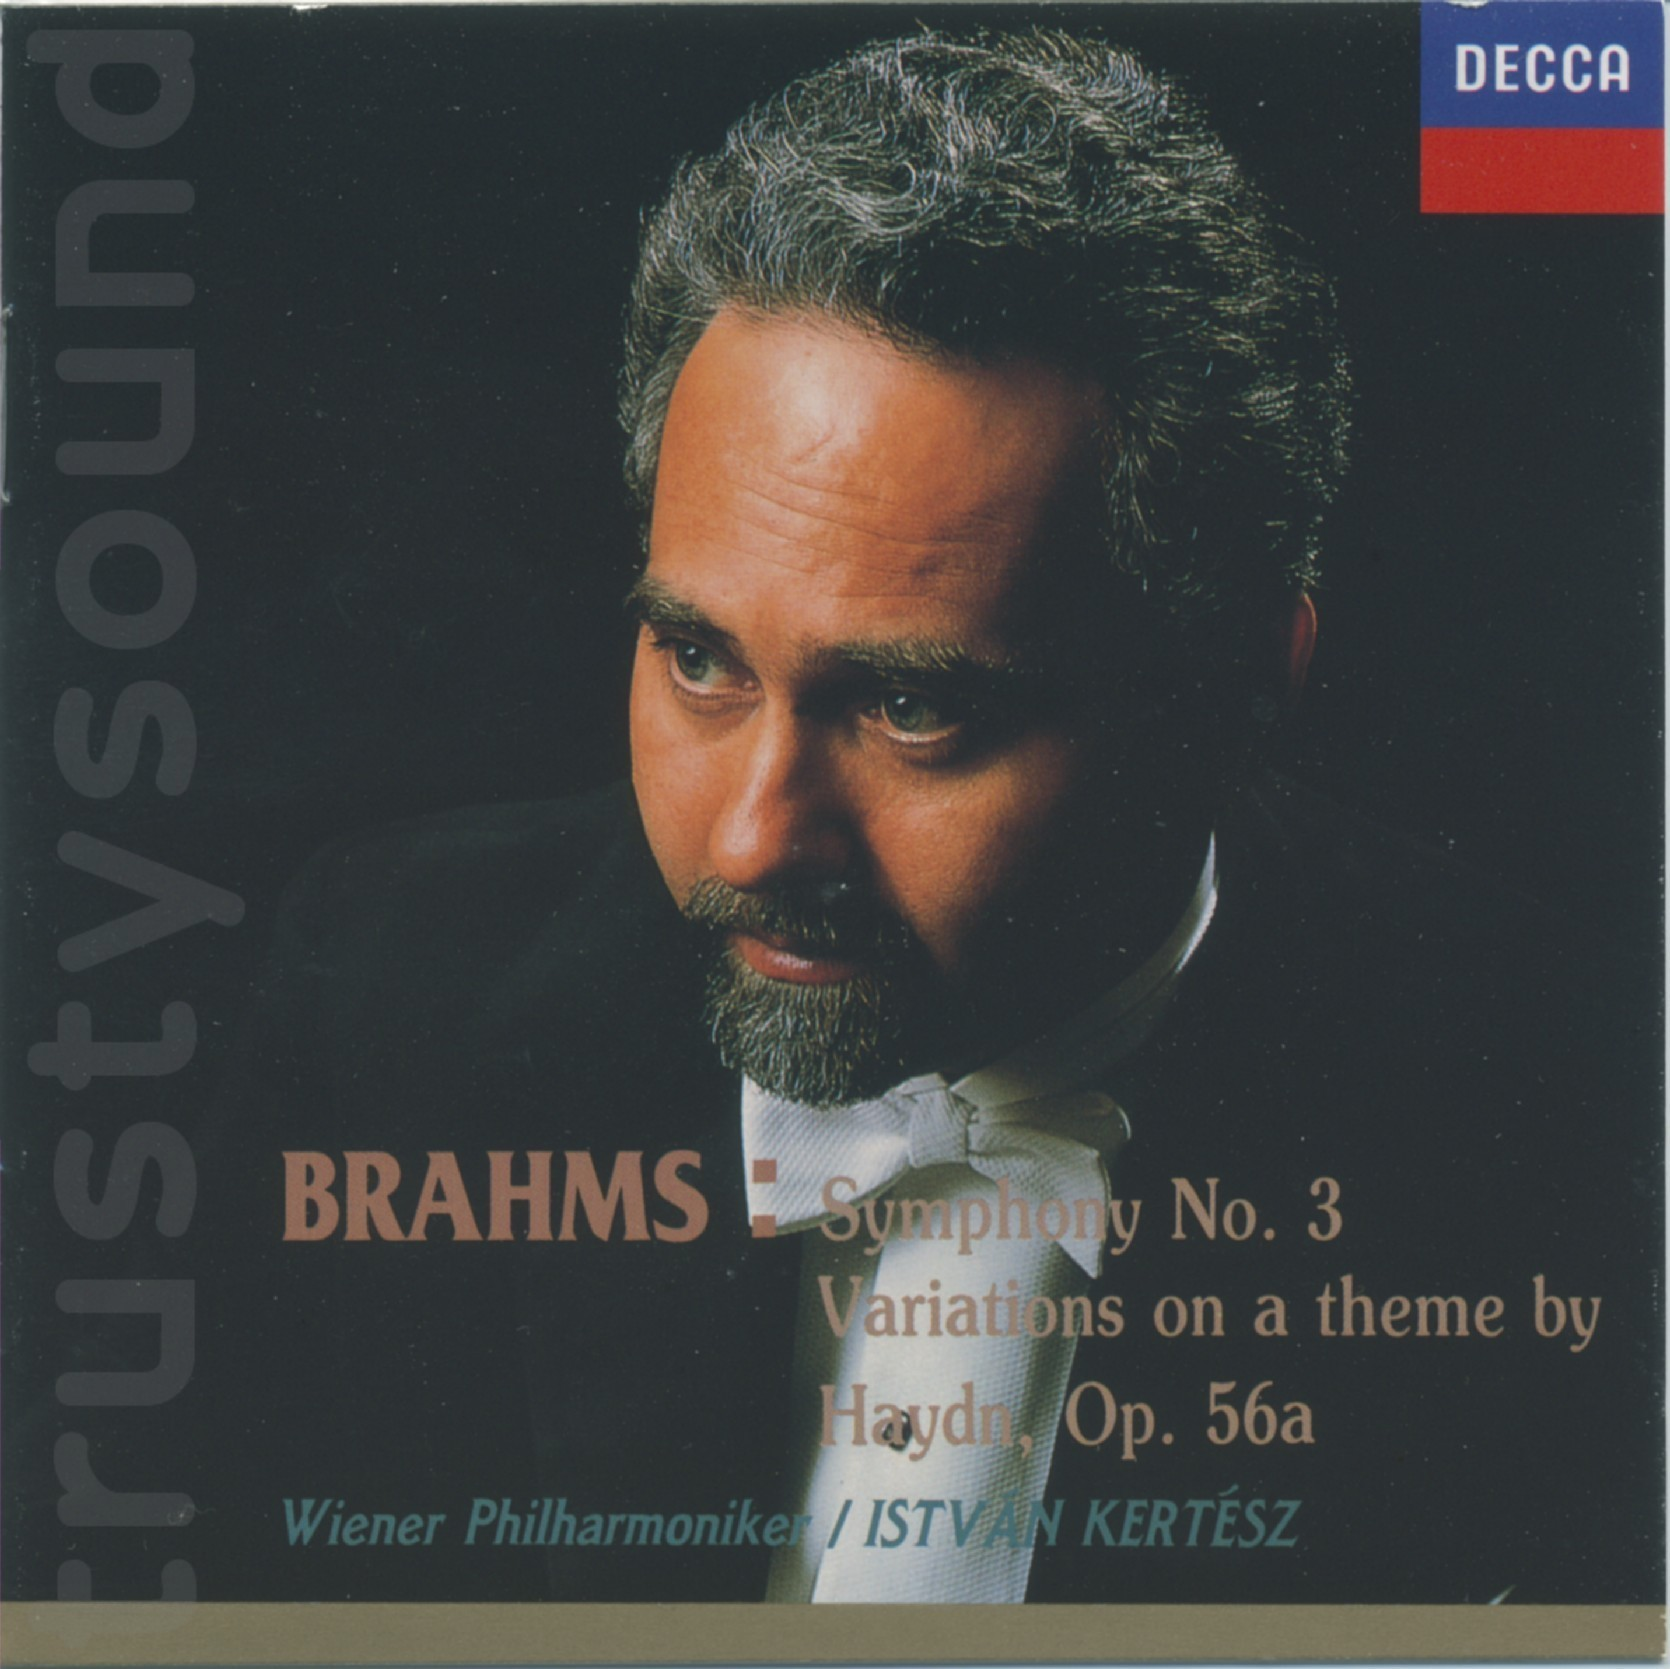 brahms symphony no 3 programme note Bbc orchestras and choirs calendar artists bbc orchestras and choirs calendar by month feb 2018 mar 2018 apr 2018 sep 2013 oct 2013 nov 2013 dec 2013 jan 2014 feb please note.